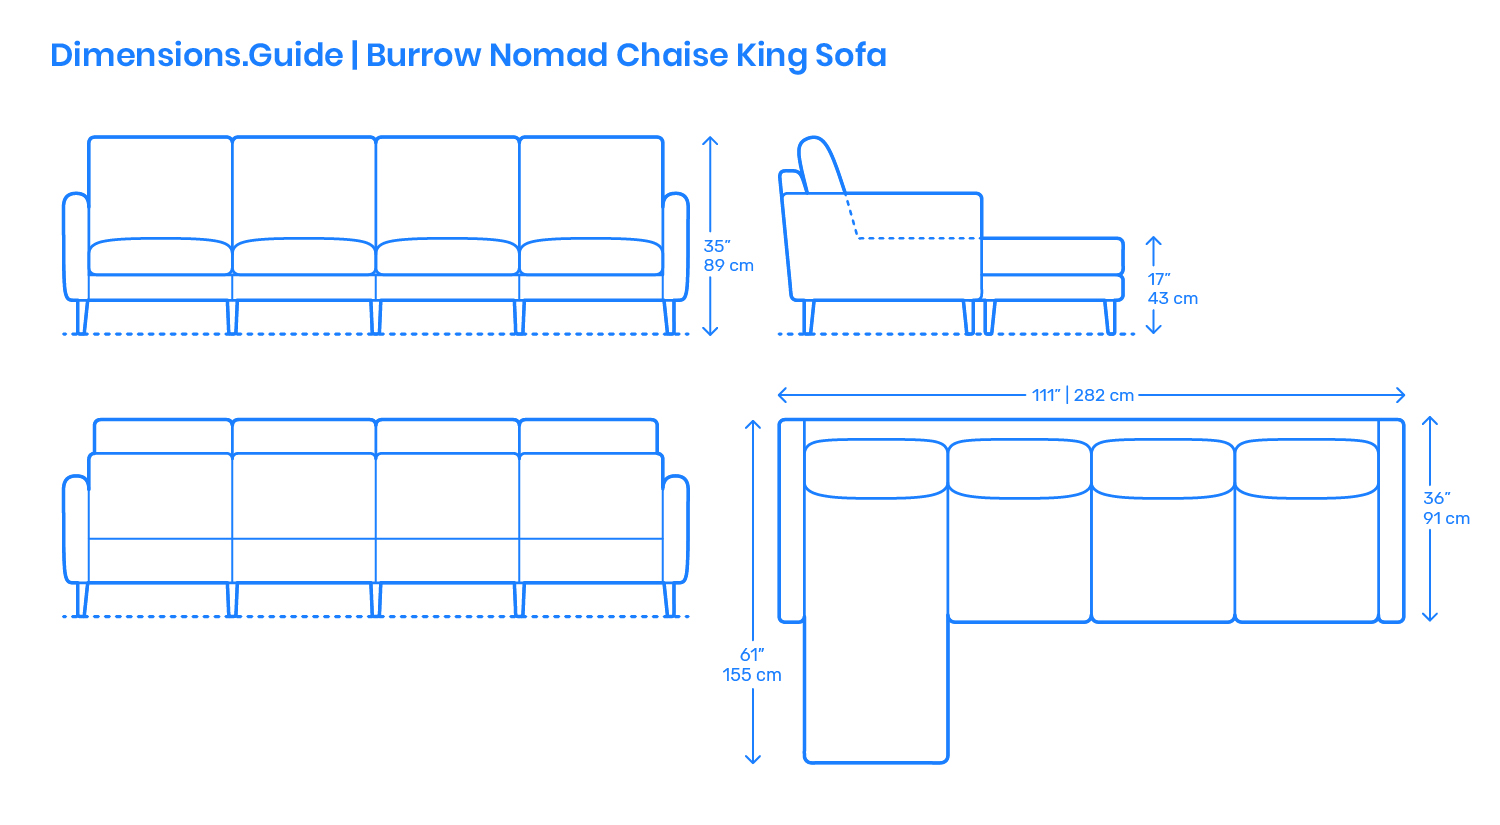 Burrow Nomad Chaise King Sofa Dimensions Amp Drawings